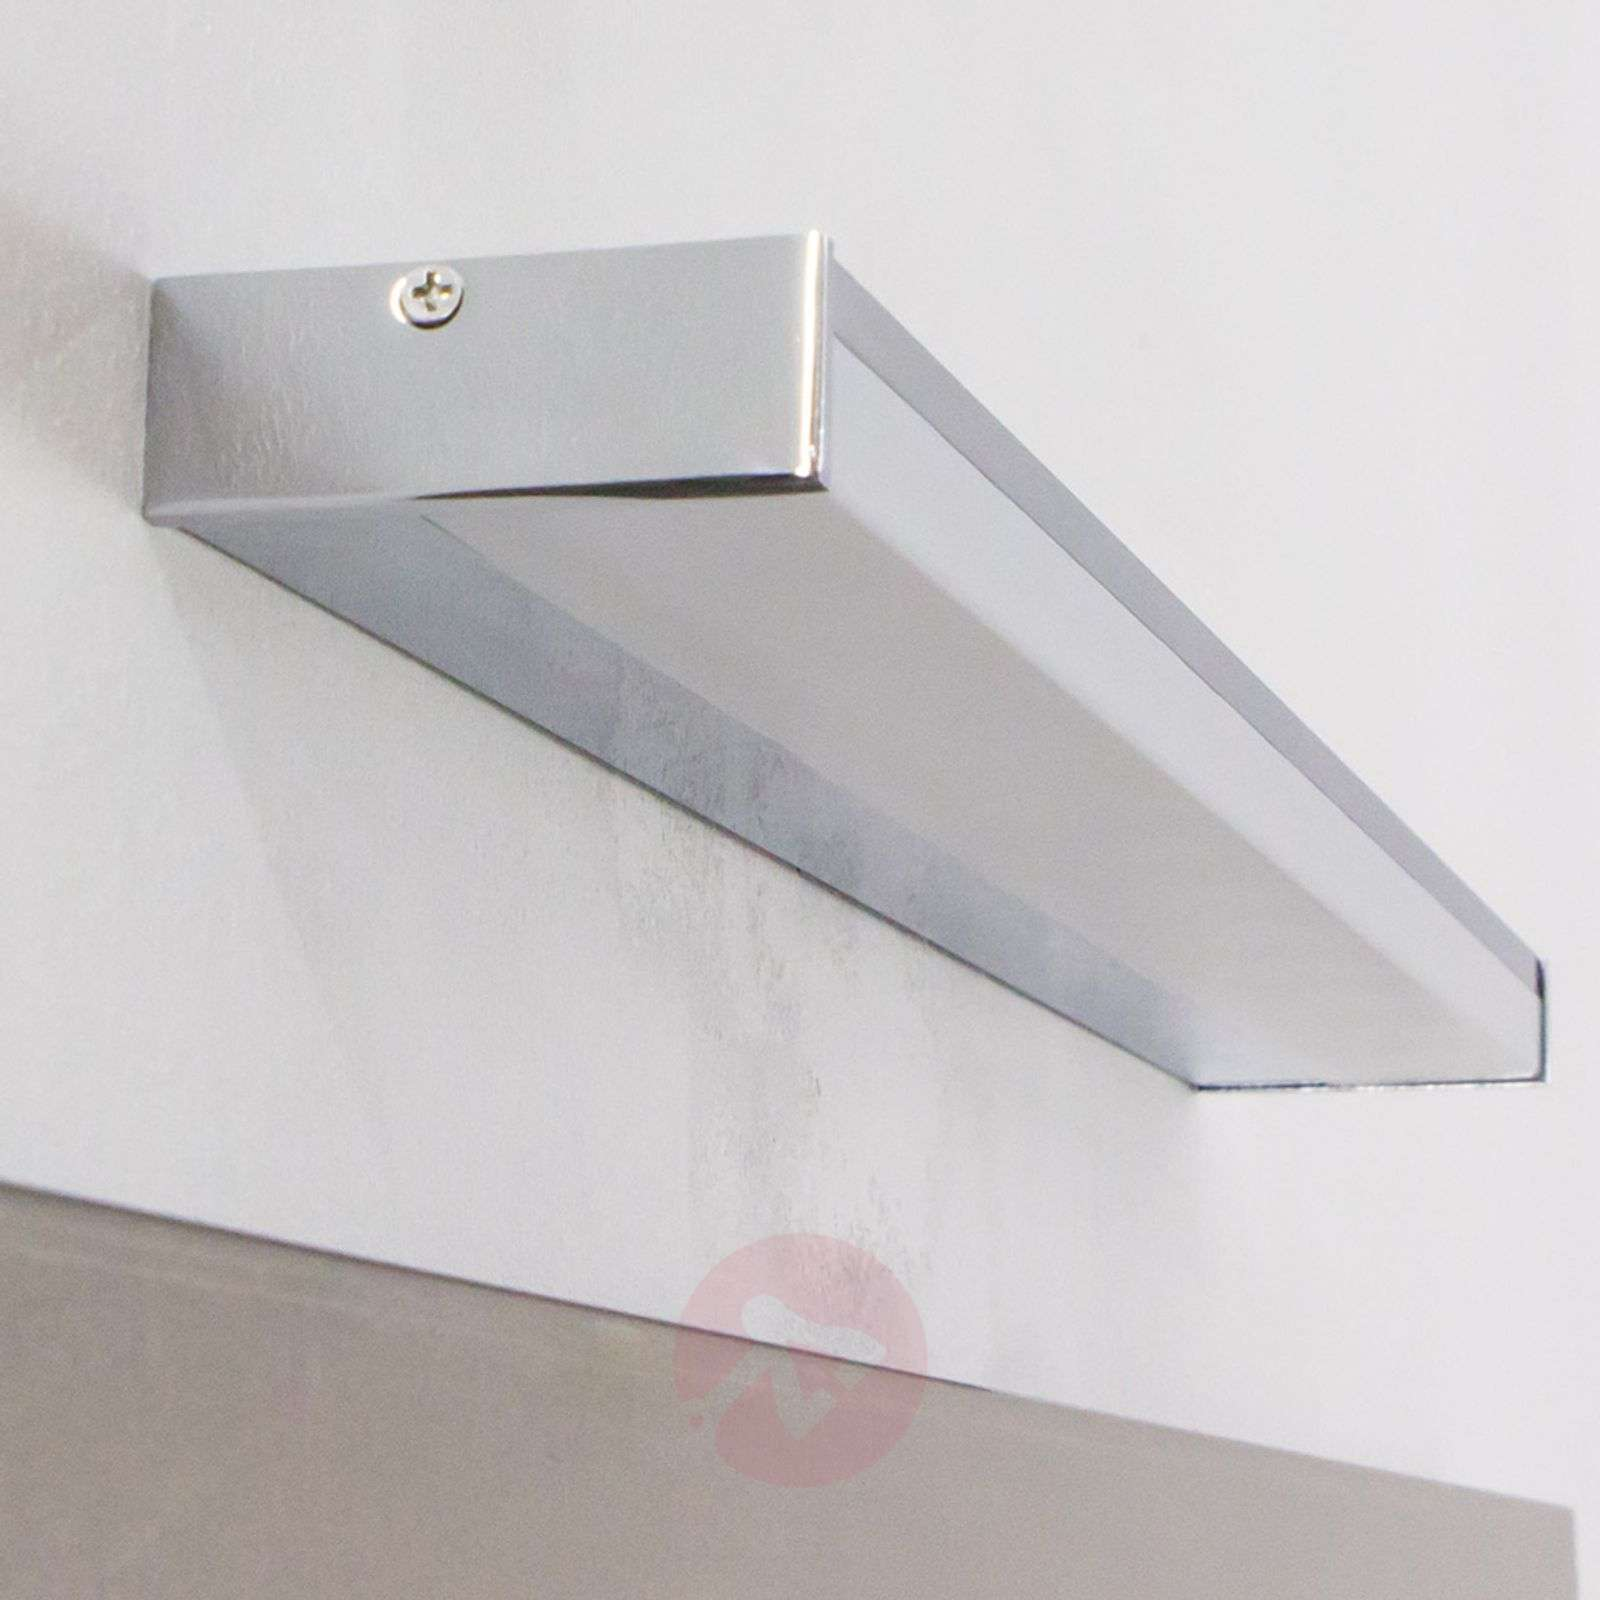 Francis LED wall lamp for the bathroom-9641054-02